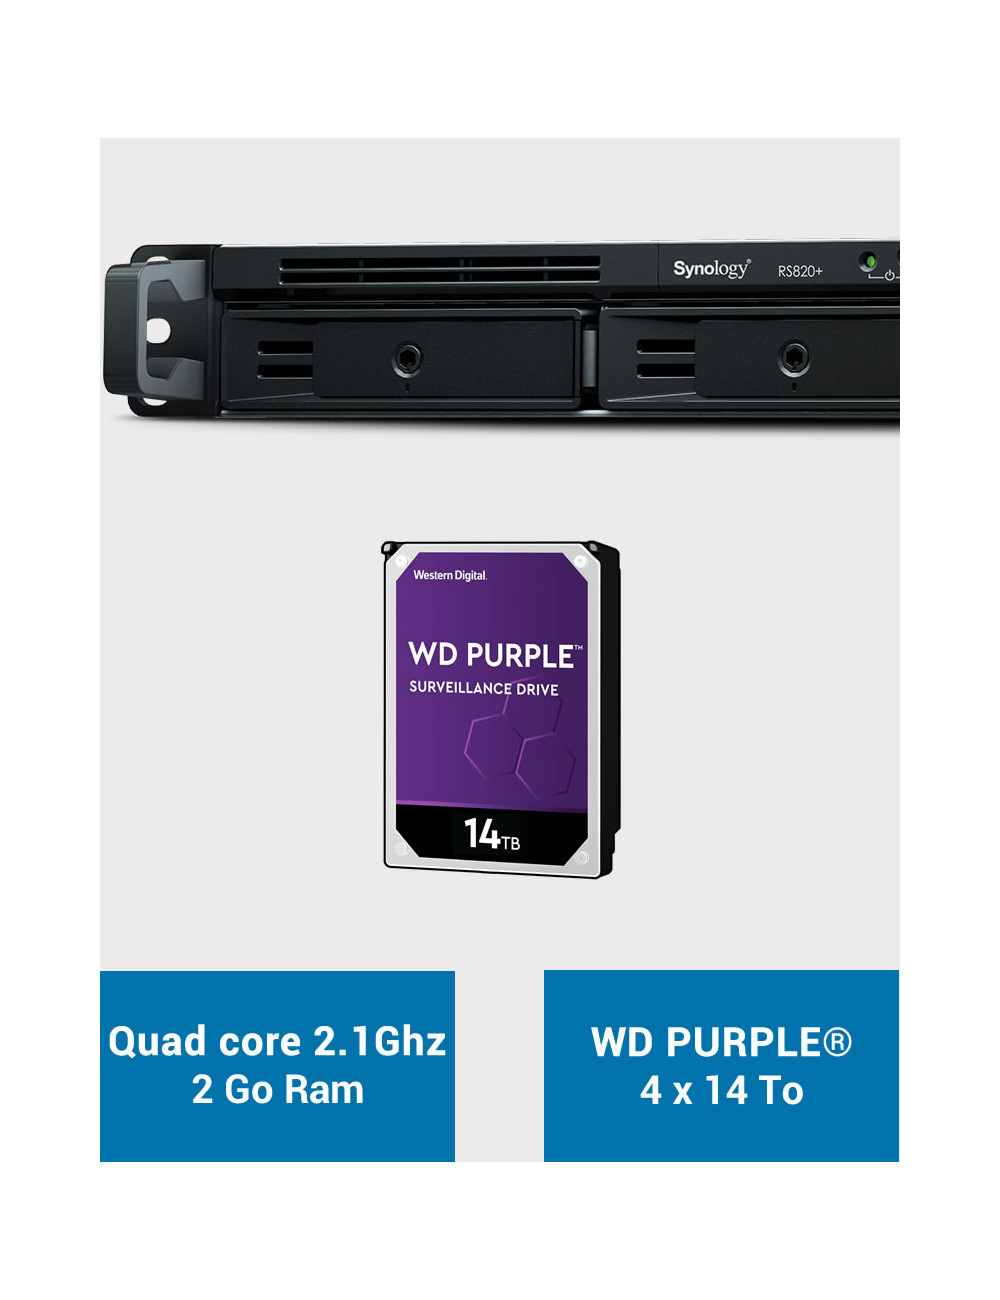 Synology RS820+ 2GB Serveur NAS WD PURPLE 56To (4x14To)